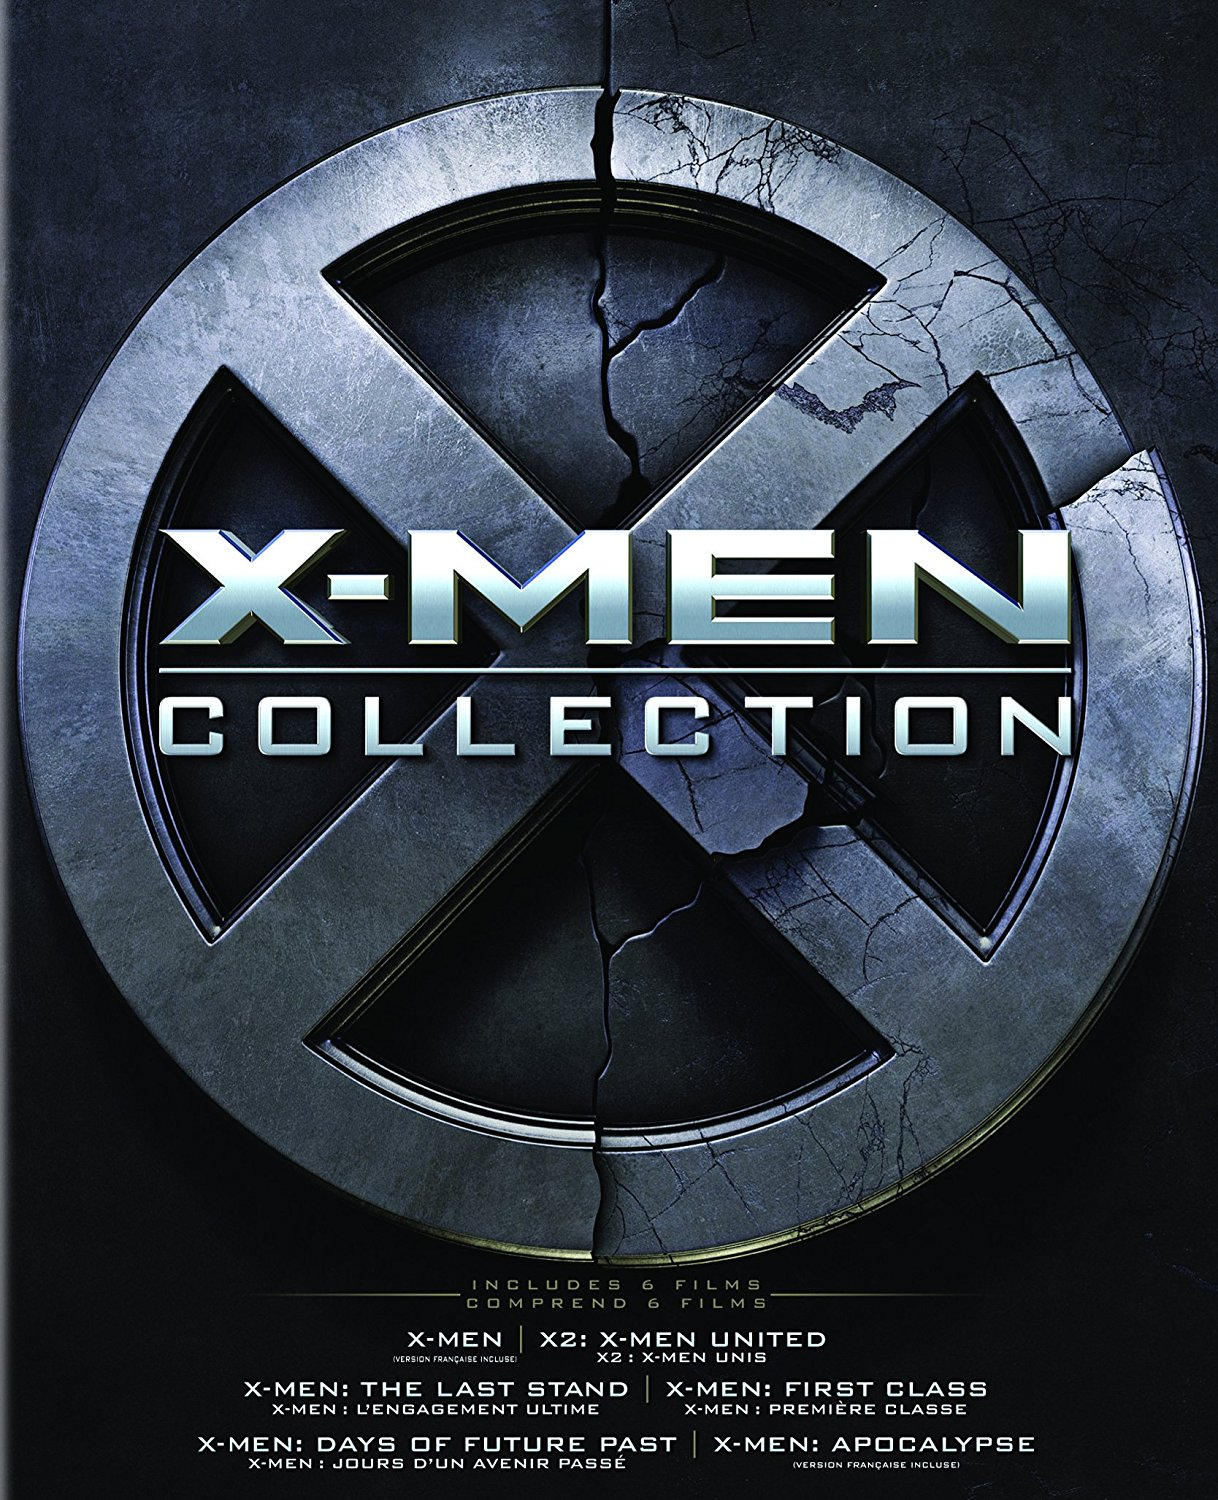 X-Men Collection (2000-2017) ταινιες online seires oipeirates greek subs